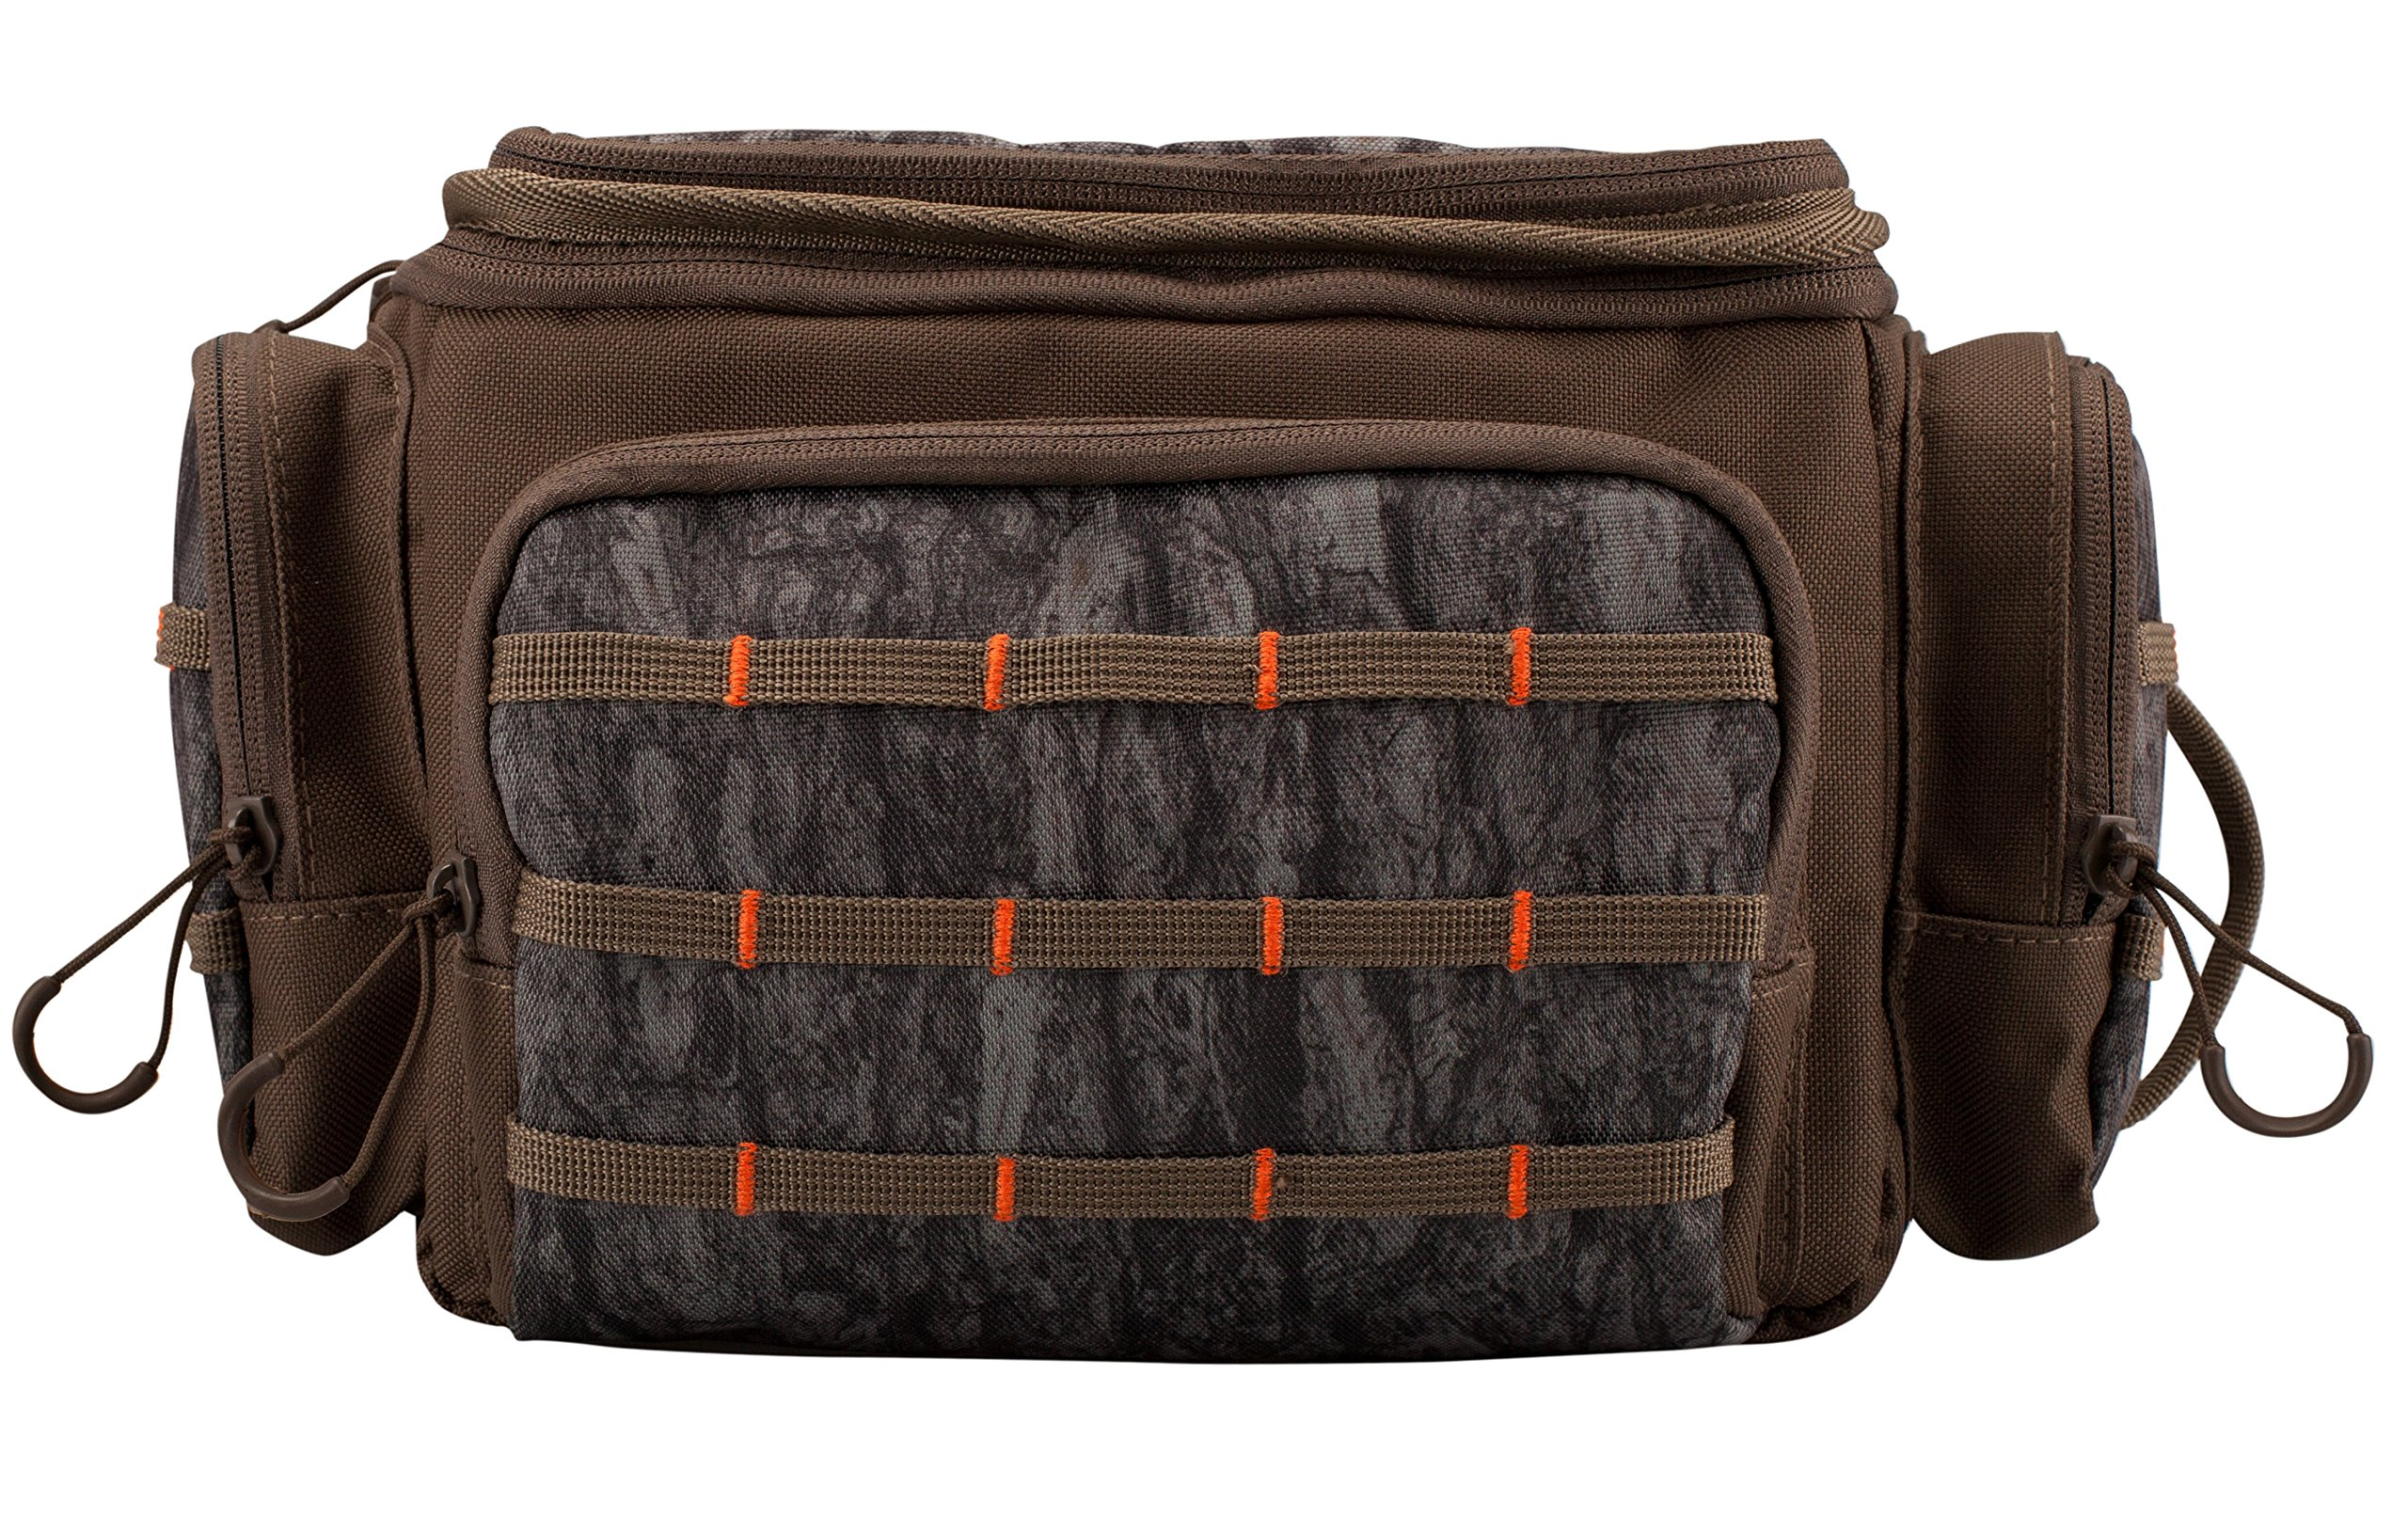 Moultrie MCA-13293 Small Camera Bag